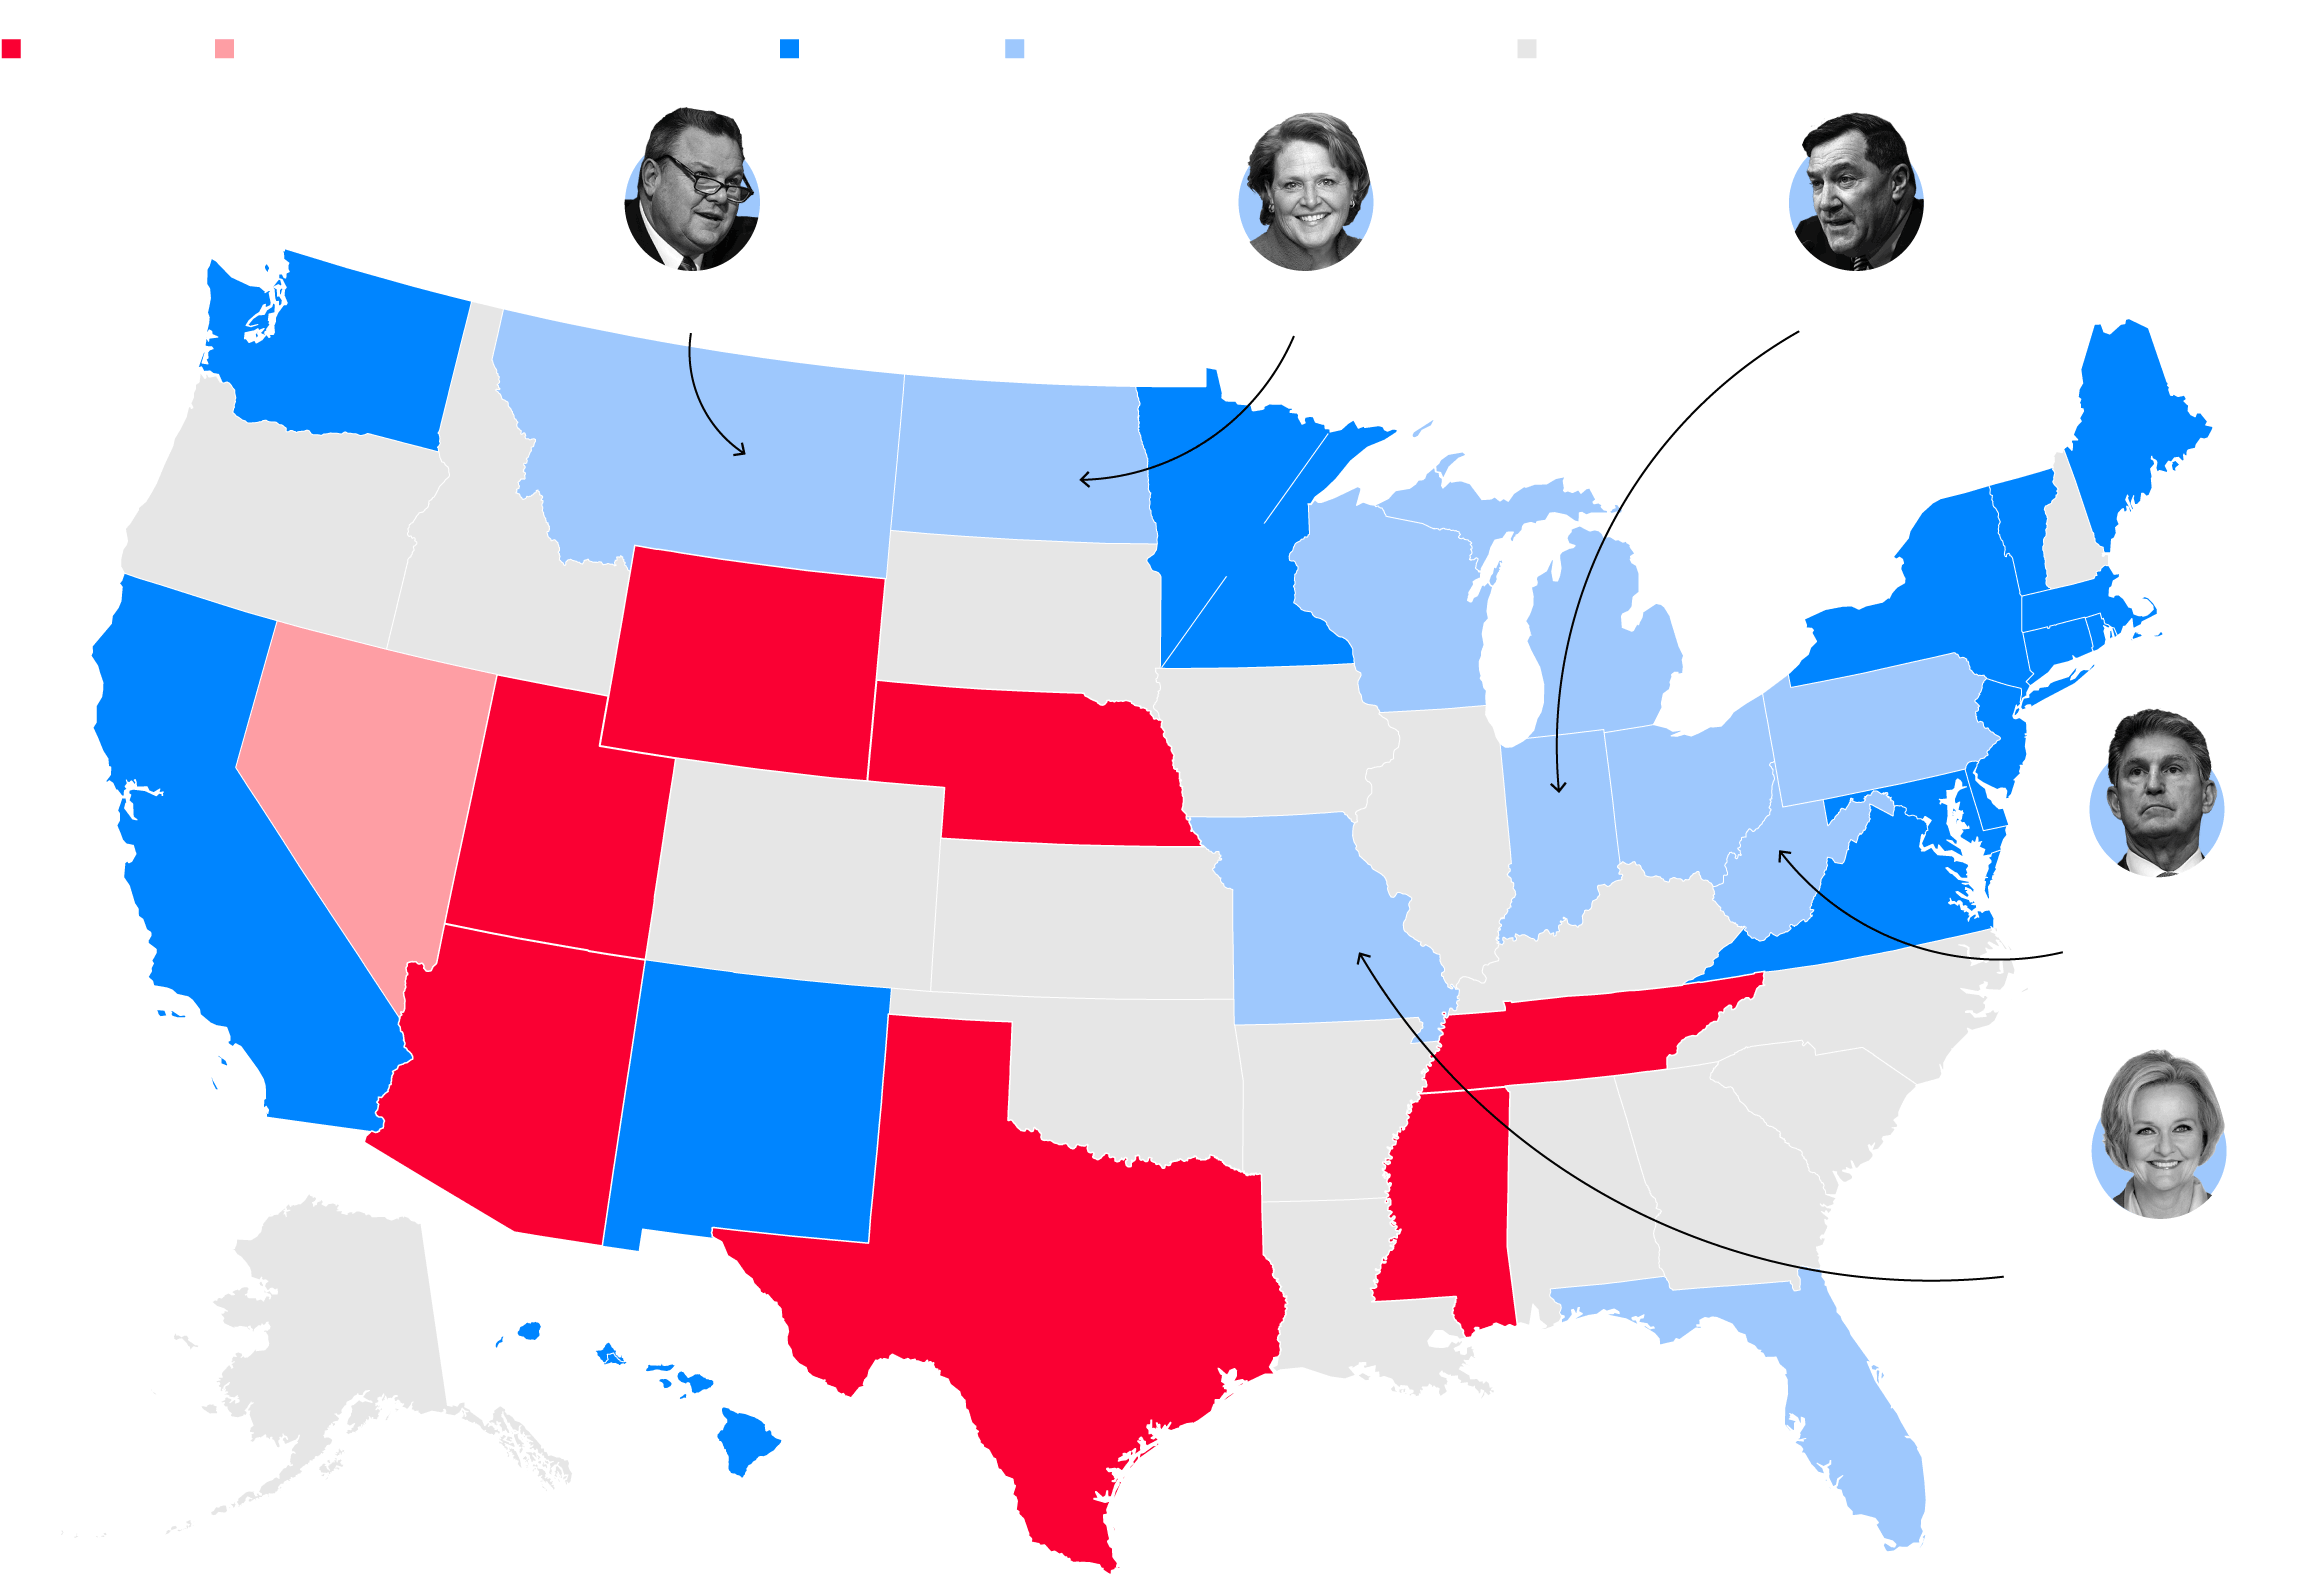 History and Polling Point To Sweeping Democratic House Gains in 2018